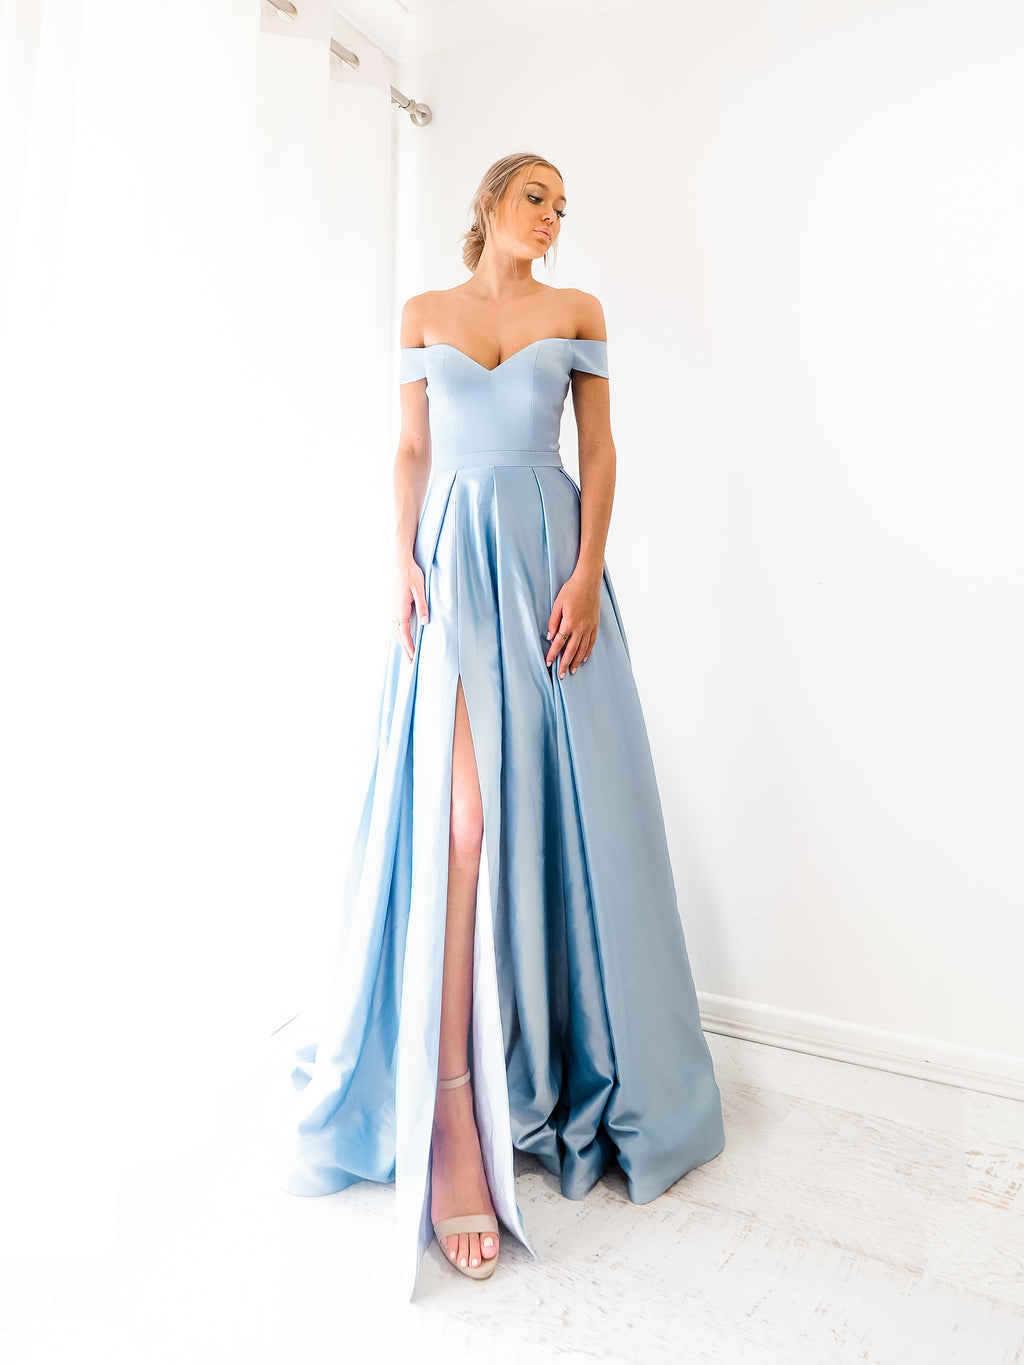 Elianna baby blue satin off the shoulder dress with lace up back